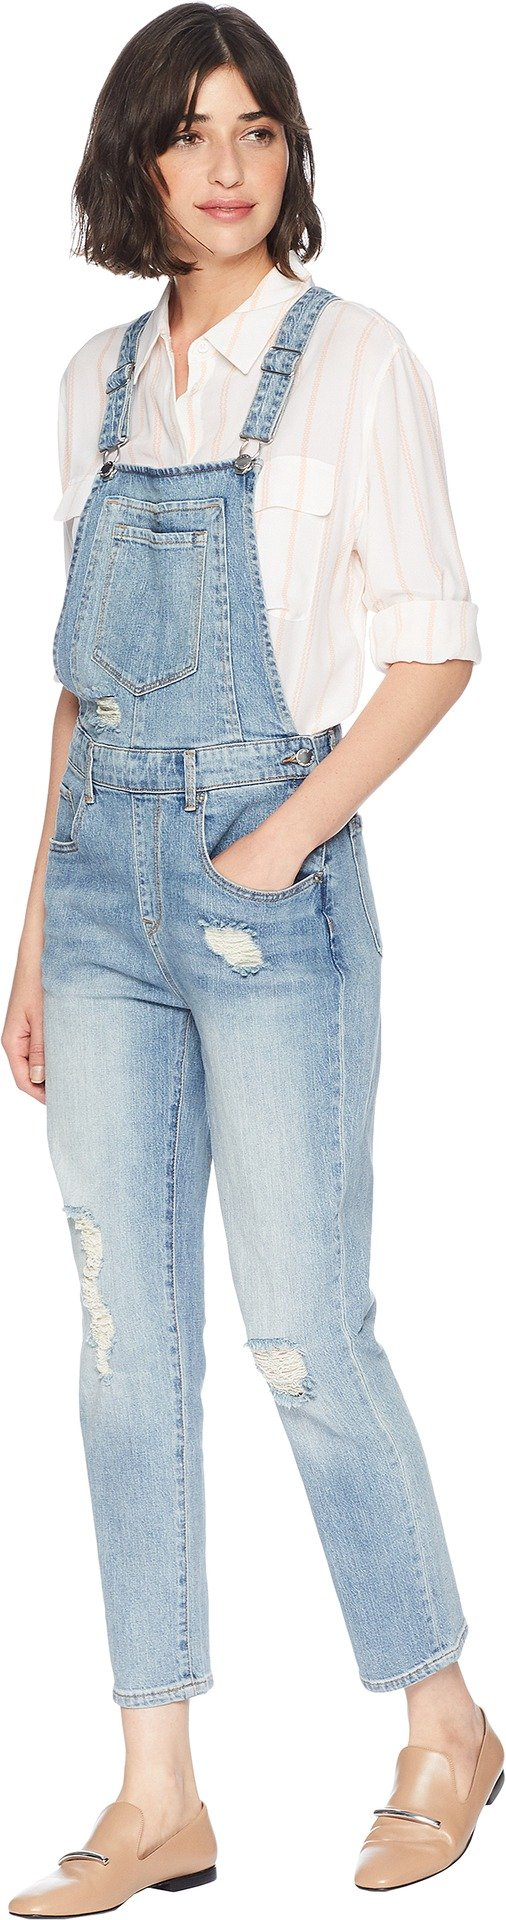 Juicy Couture Women's High-Waisted Cropped Denim Overall Big Sur Wash 2